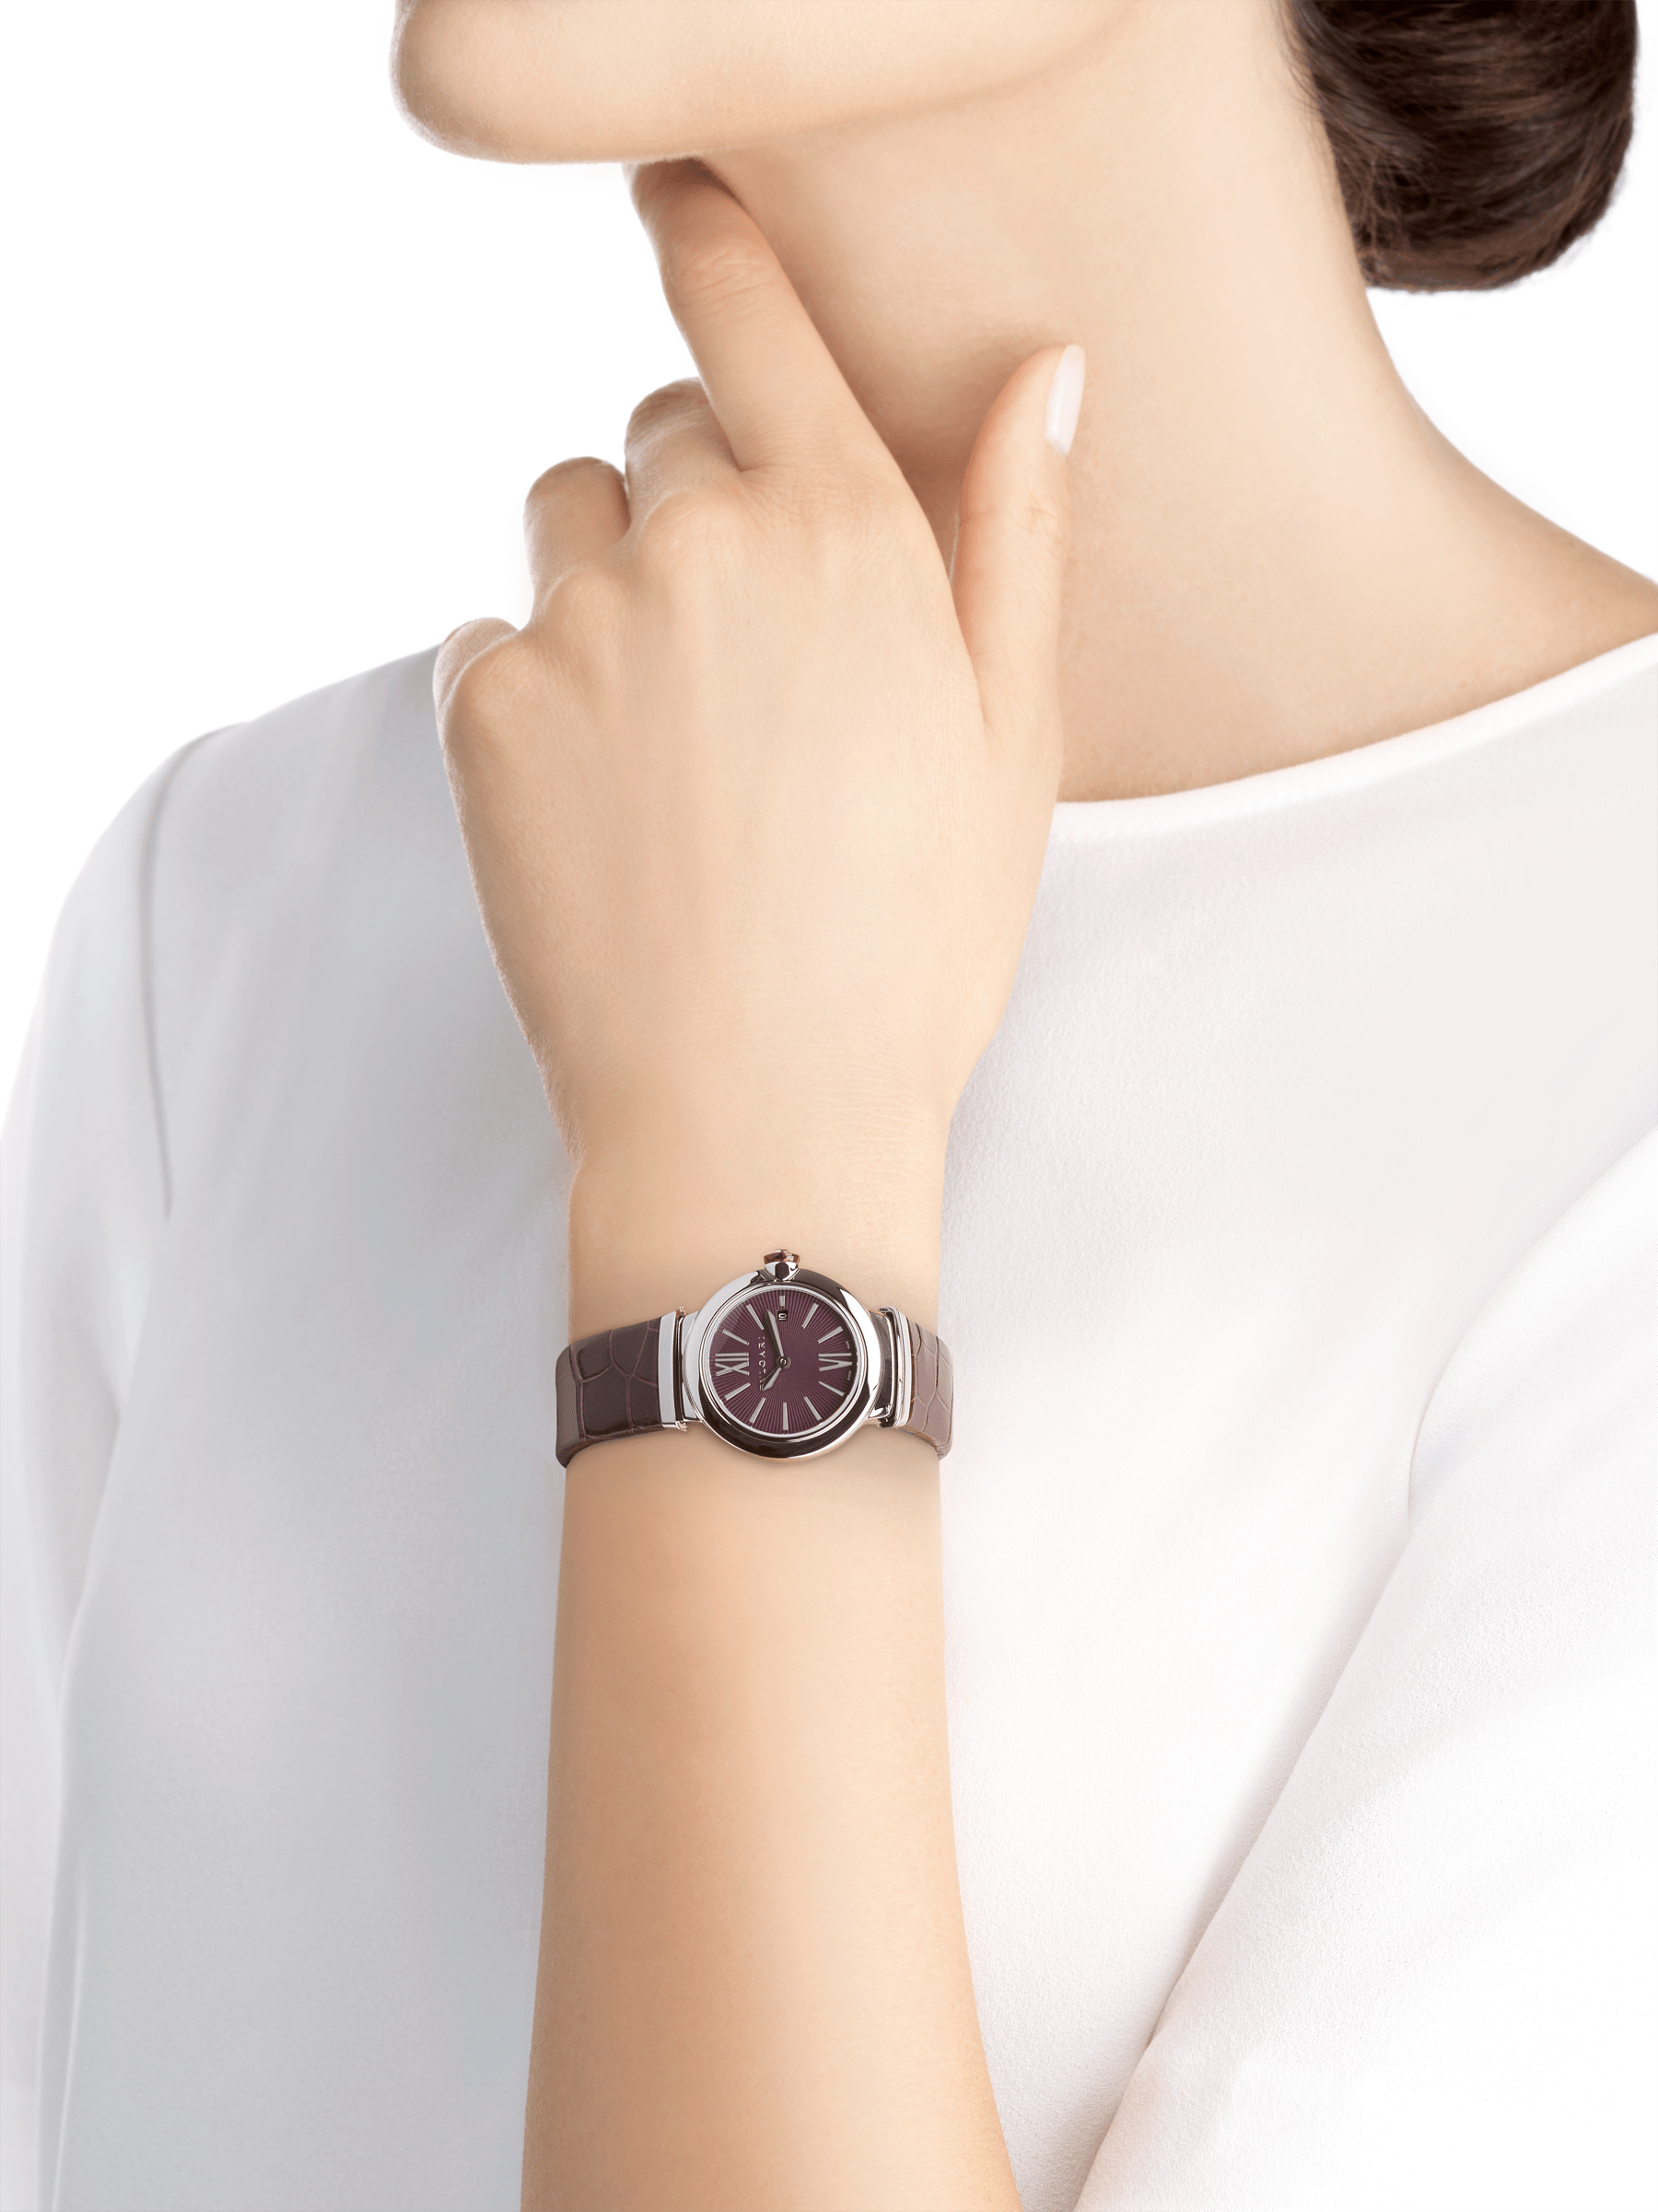 LVCEA watch with stainless steel case, violet dial and purple alligator bracelet. 102566 image 4